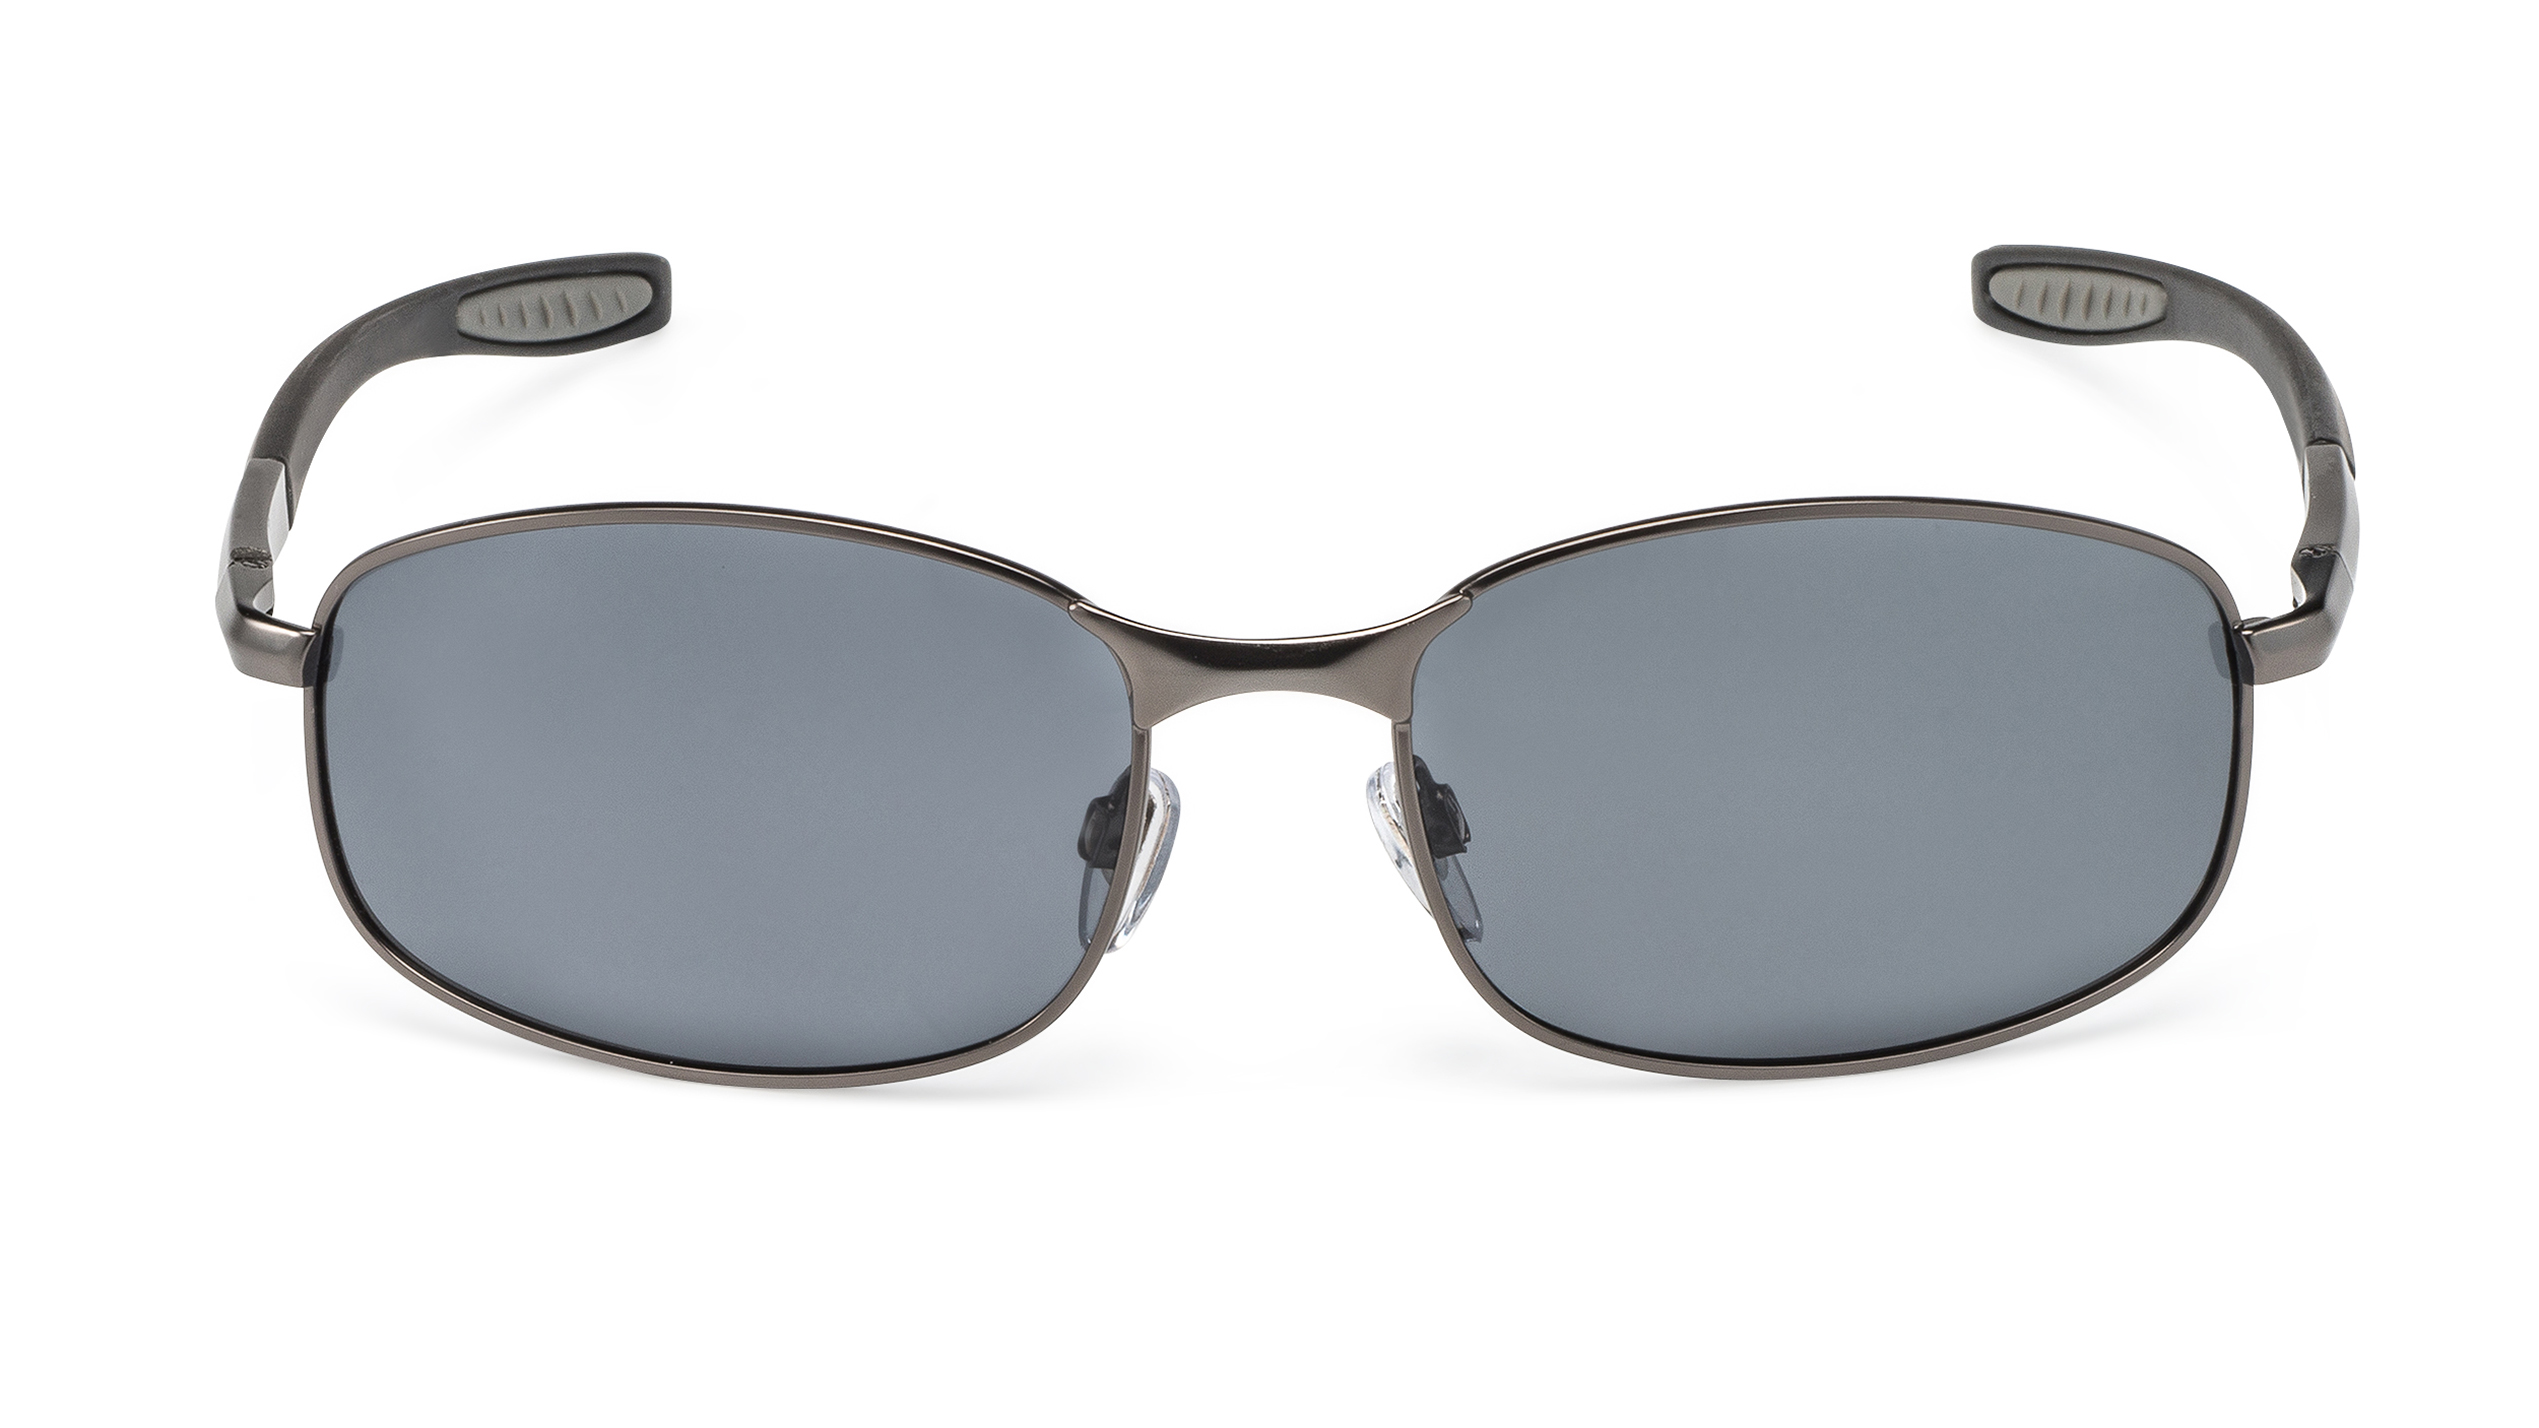 Front view polarized sunglasses F3020909